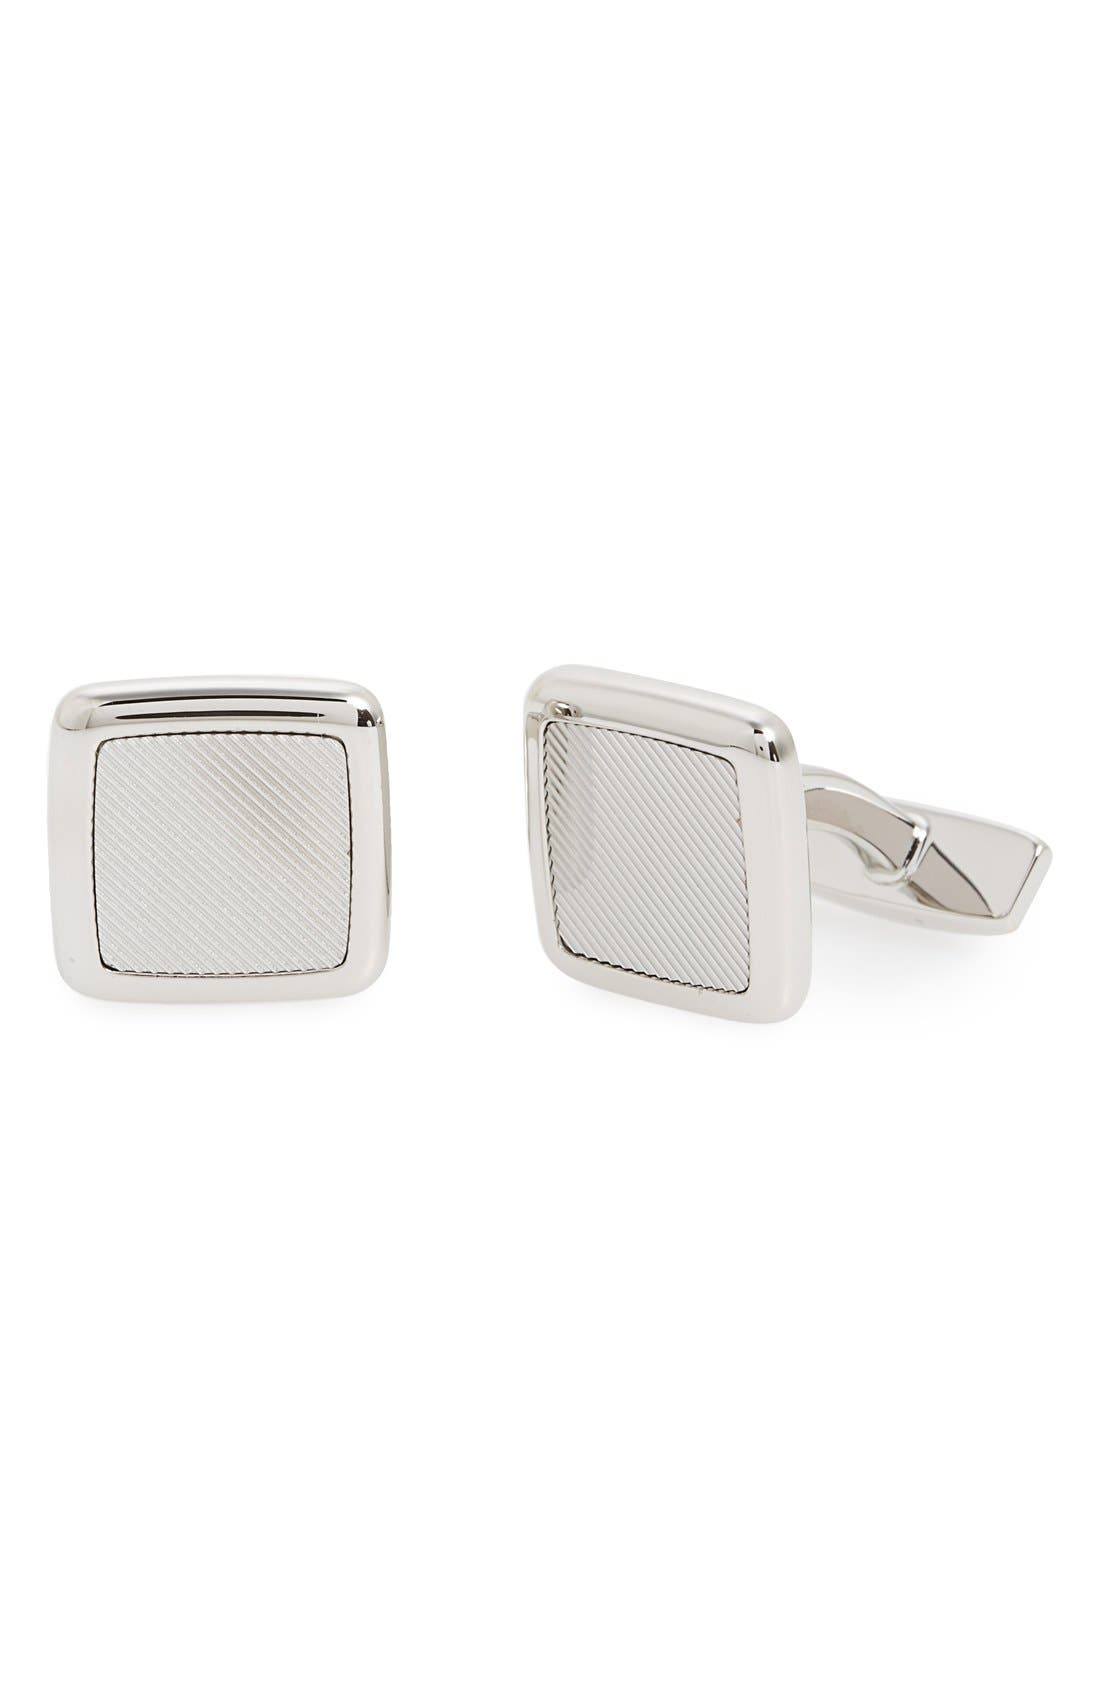 BOSS Ennio Cuff Links